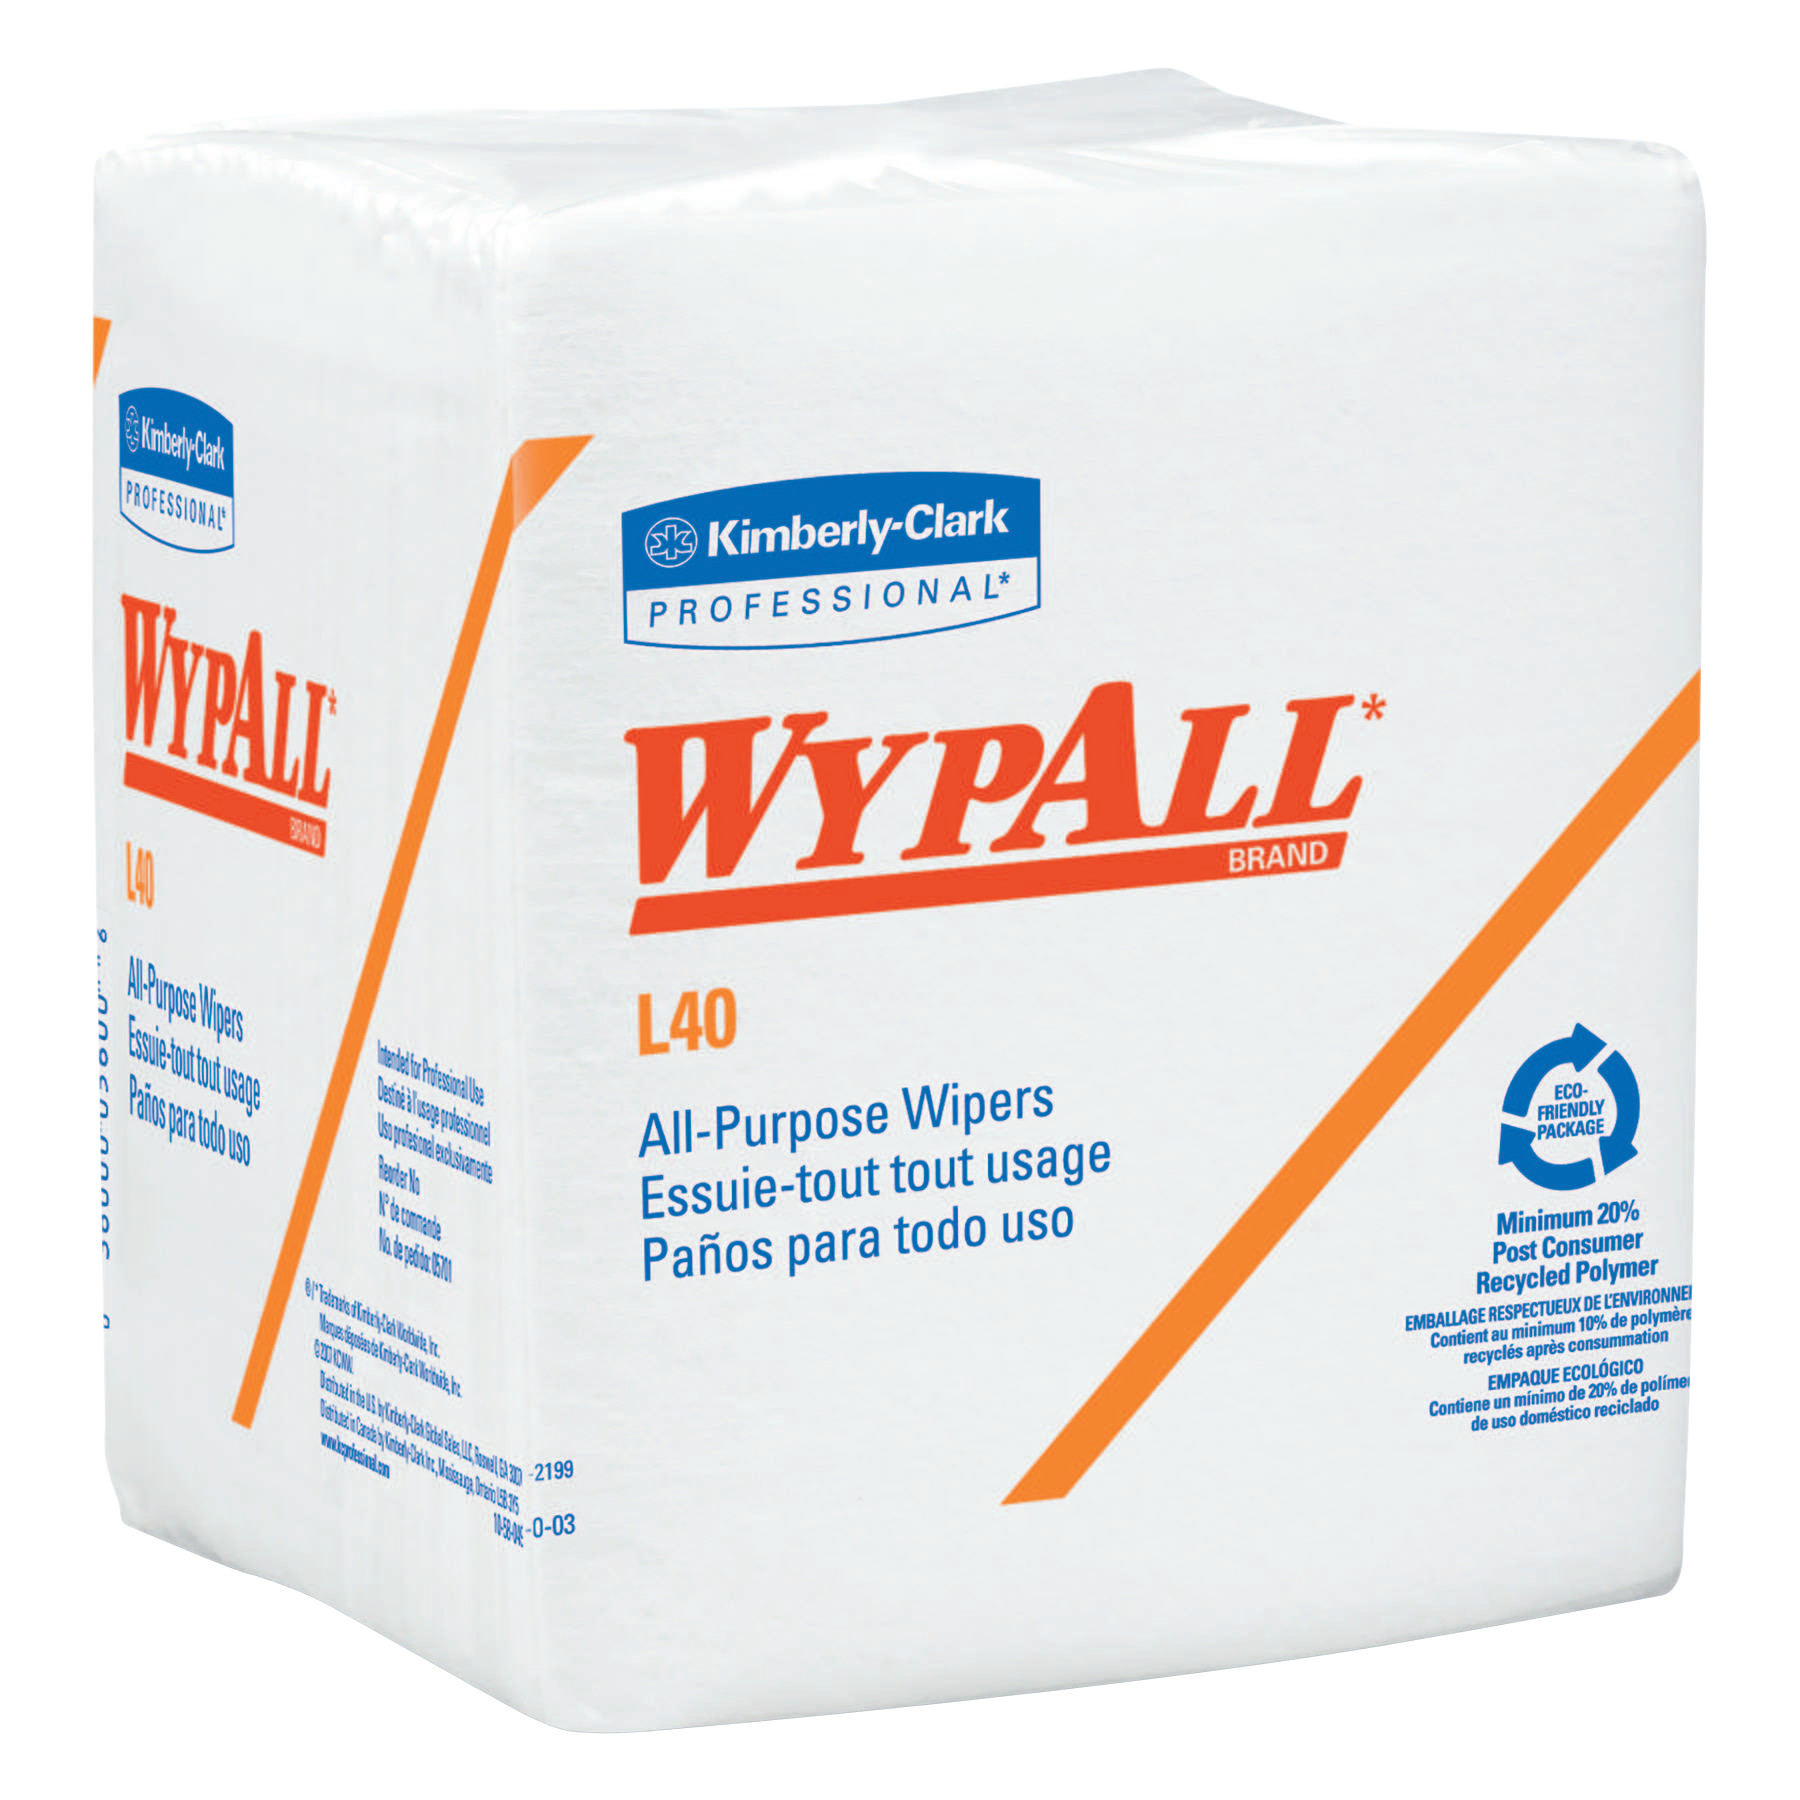 Kimberly-Clark Professional WypAll L40 Wipers, 1/4 Fold, 19 5/8 x 14 2/5, White, 56 per pack